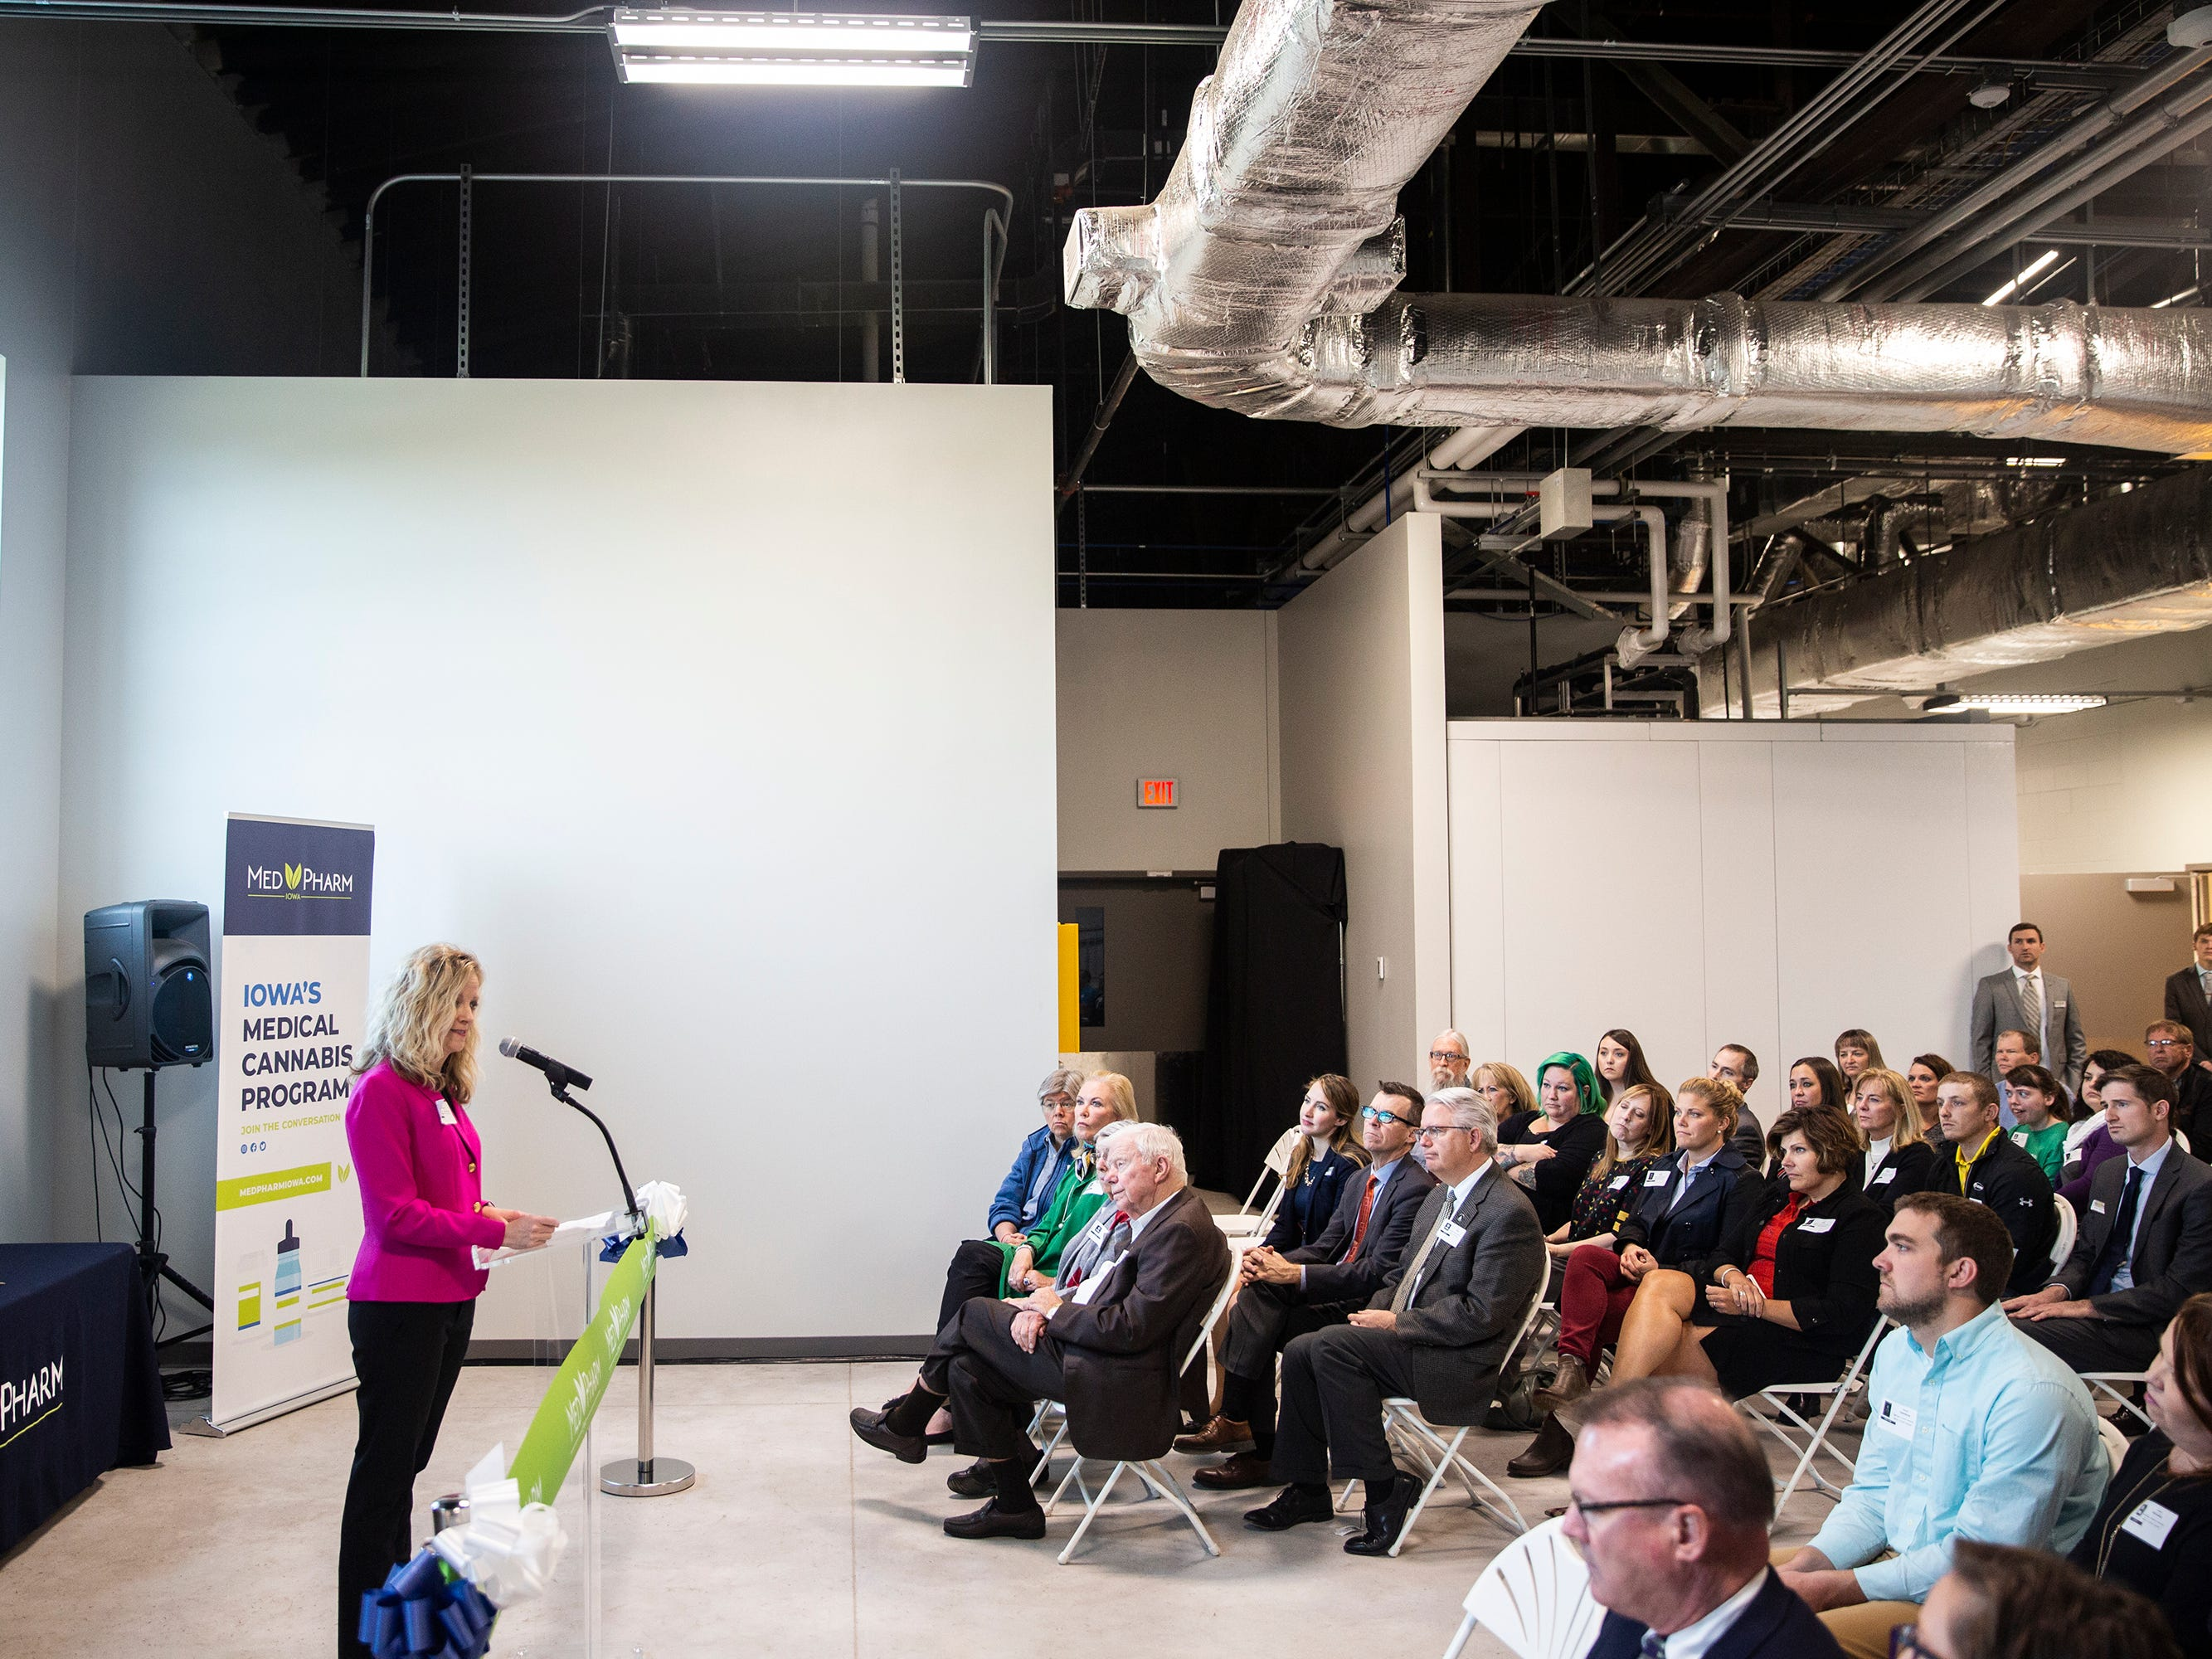 State Sen. Janet Petersen, D-Des Moines, addresses the crowd during the ribbon cutting of MedPharm Iowa's $10 million medical-marijuana production facility on Thursday, Nov. 1, 2018, in Des Moines.